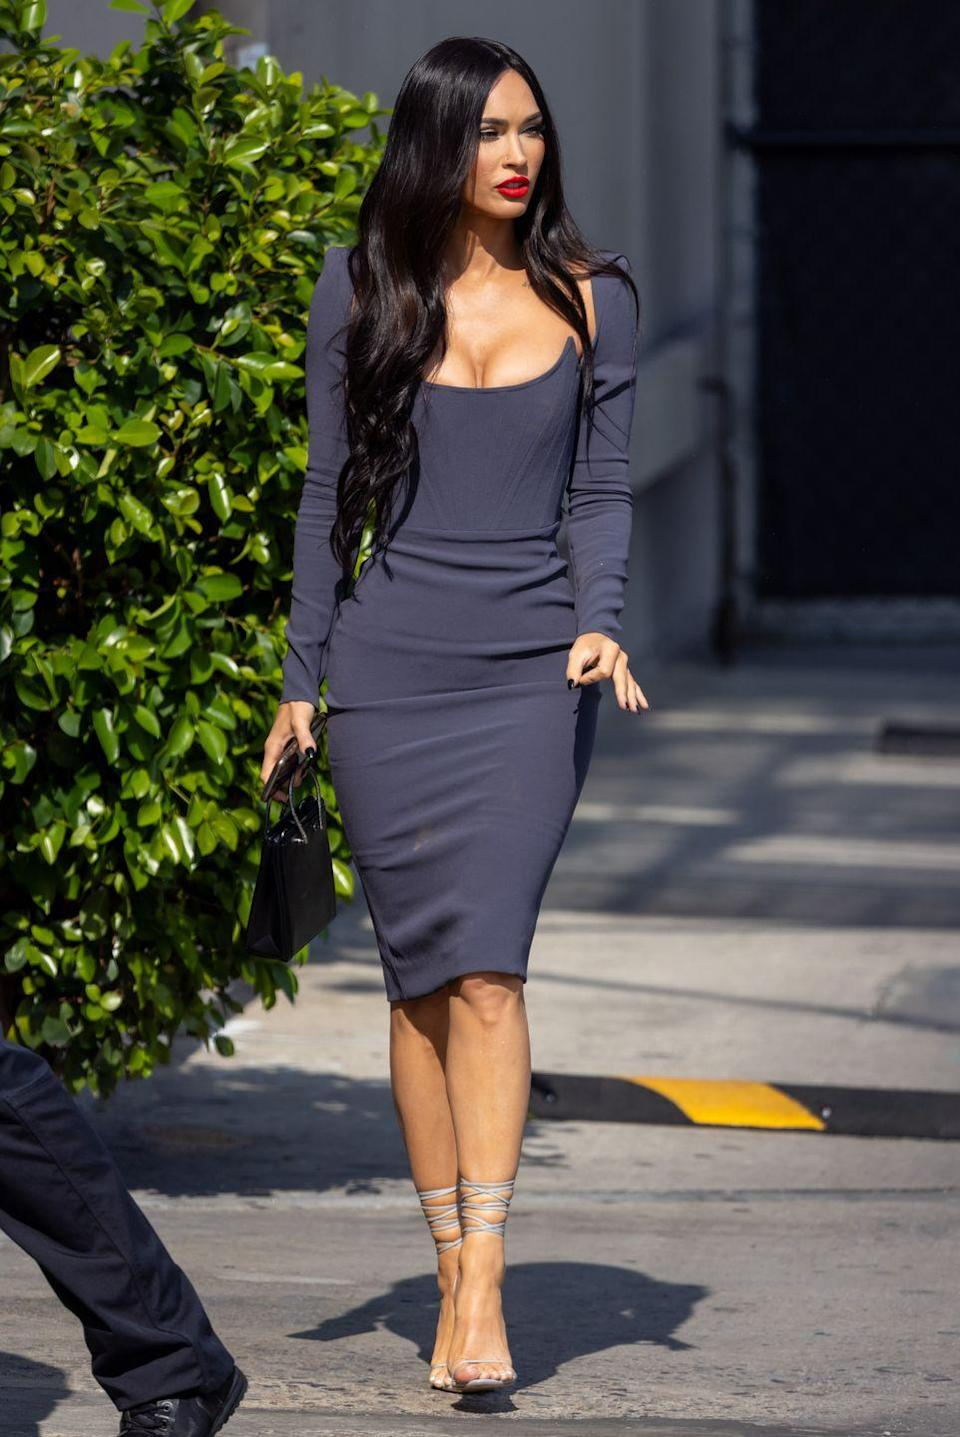 <p>Fox wore a 1950s-inspired, figure-hugging grey bodycon dress with a tight corset bodice for her appearance on Jimmy Kimmel Live on Monday night. The star paired the look with lace-up grey heels and a bold red lip. </p>